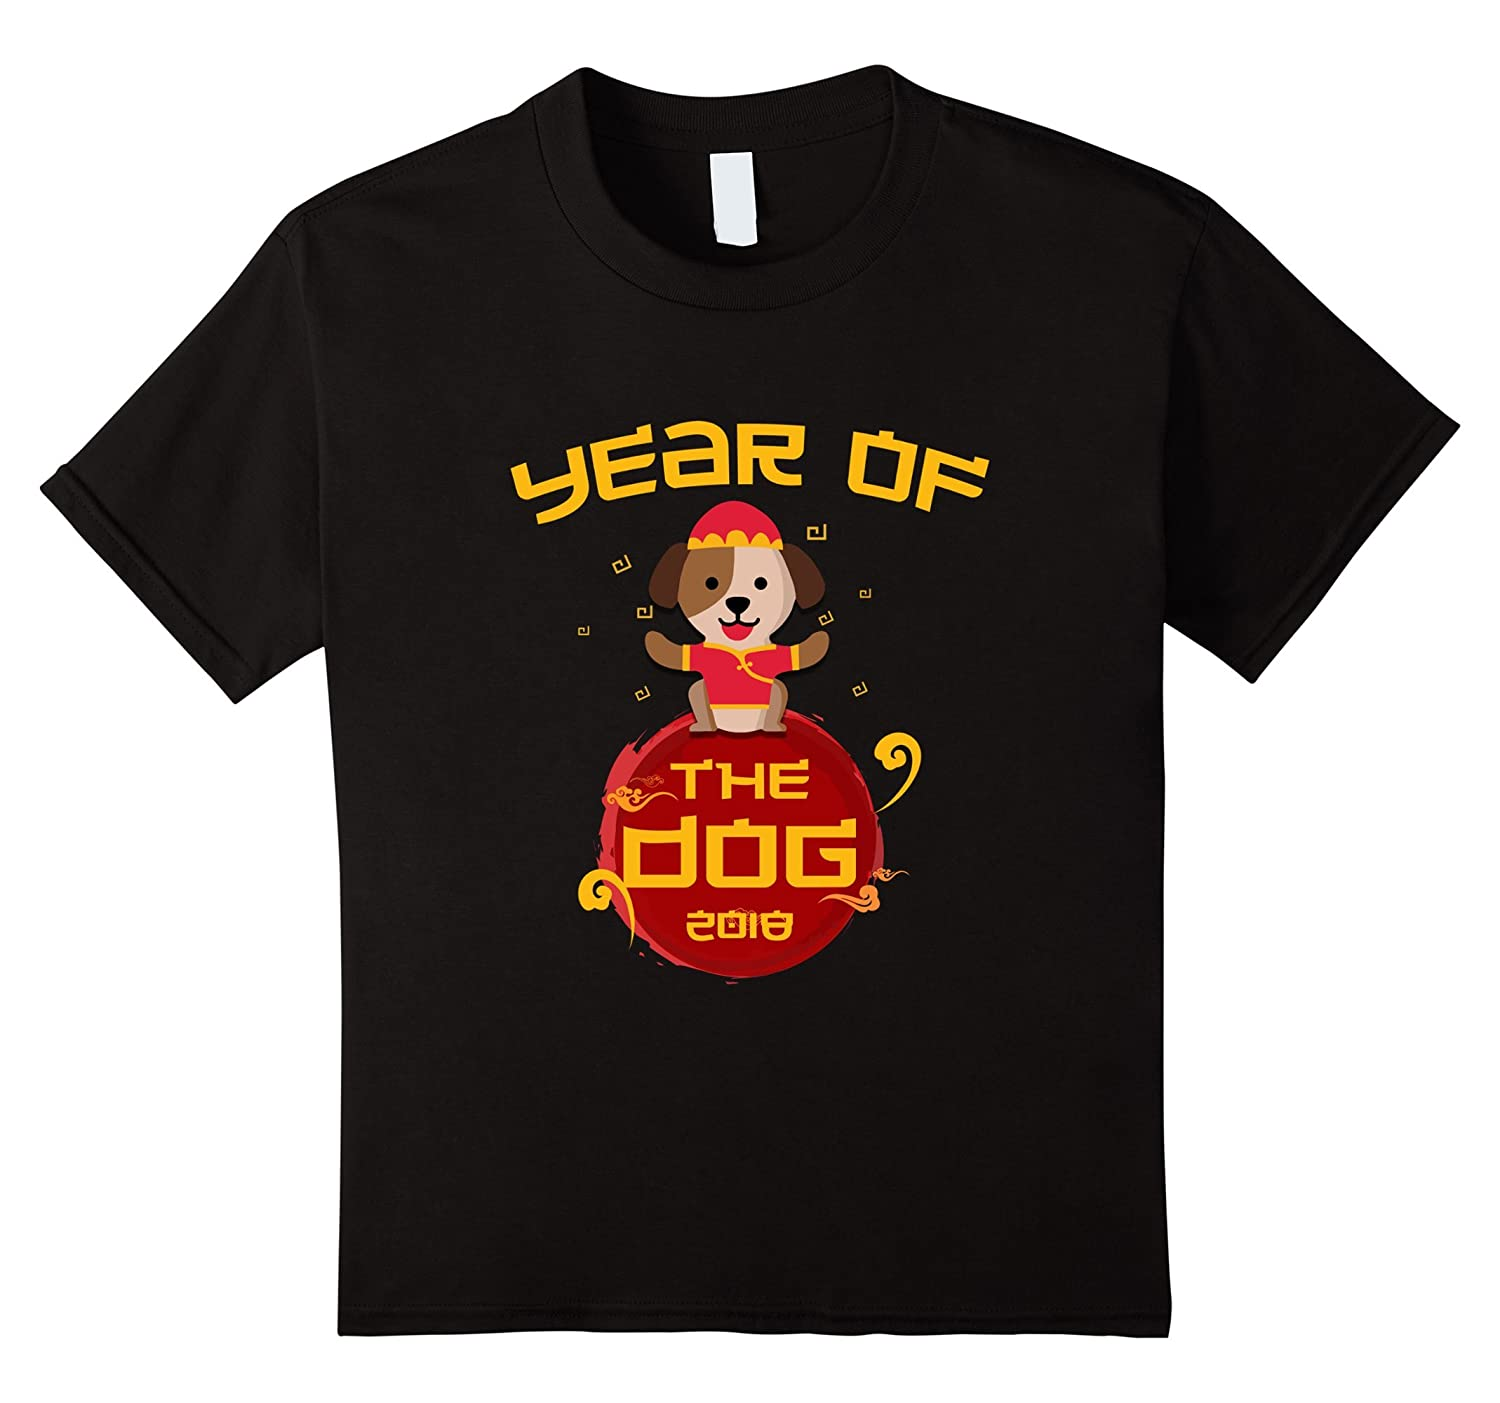 2018 shirt year Large Black-Awarplus